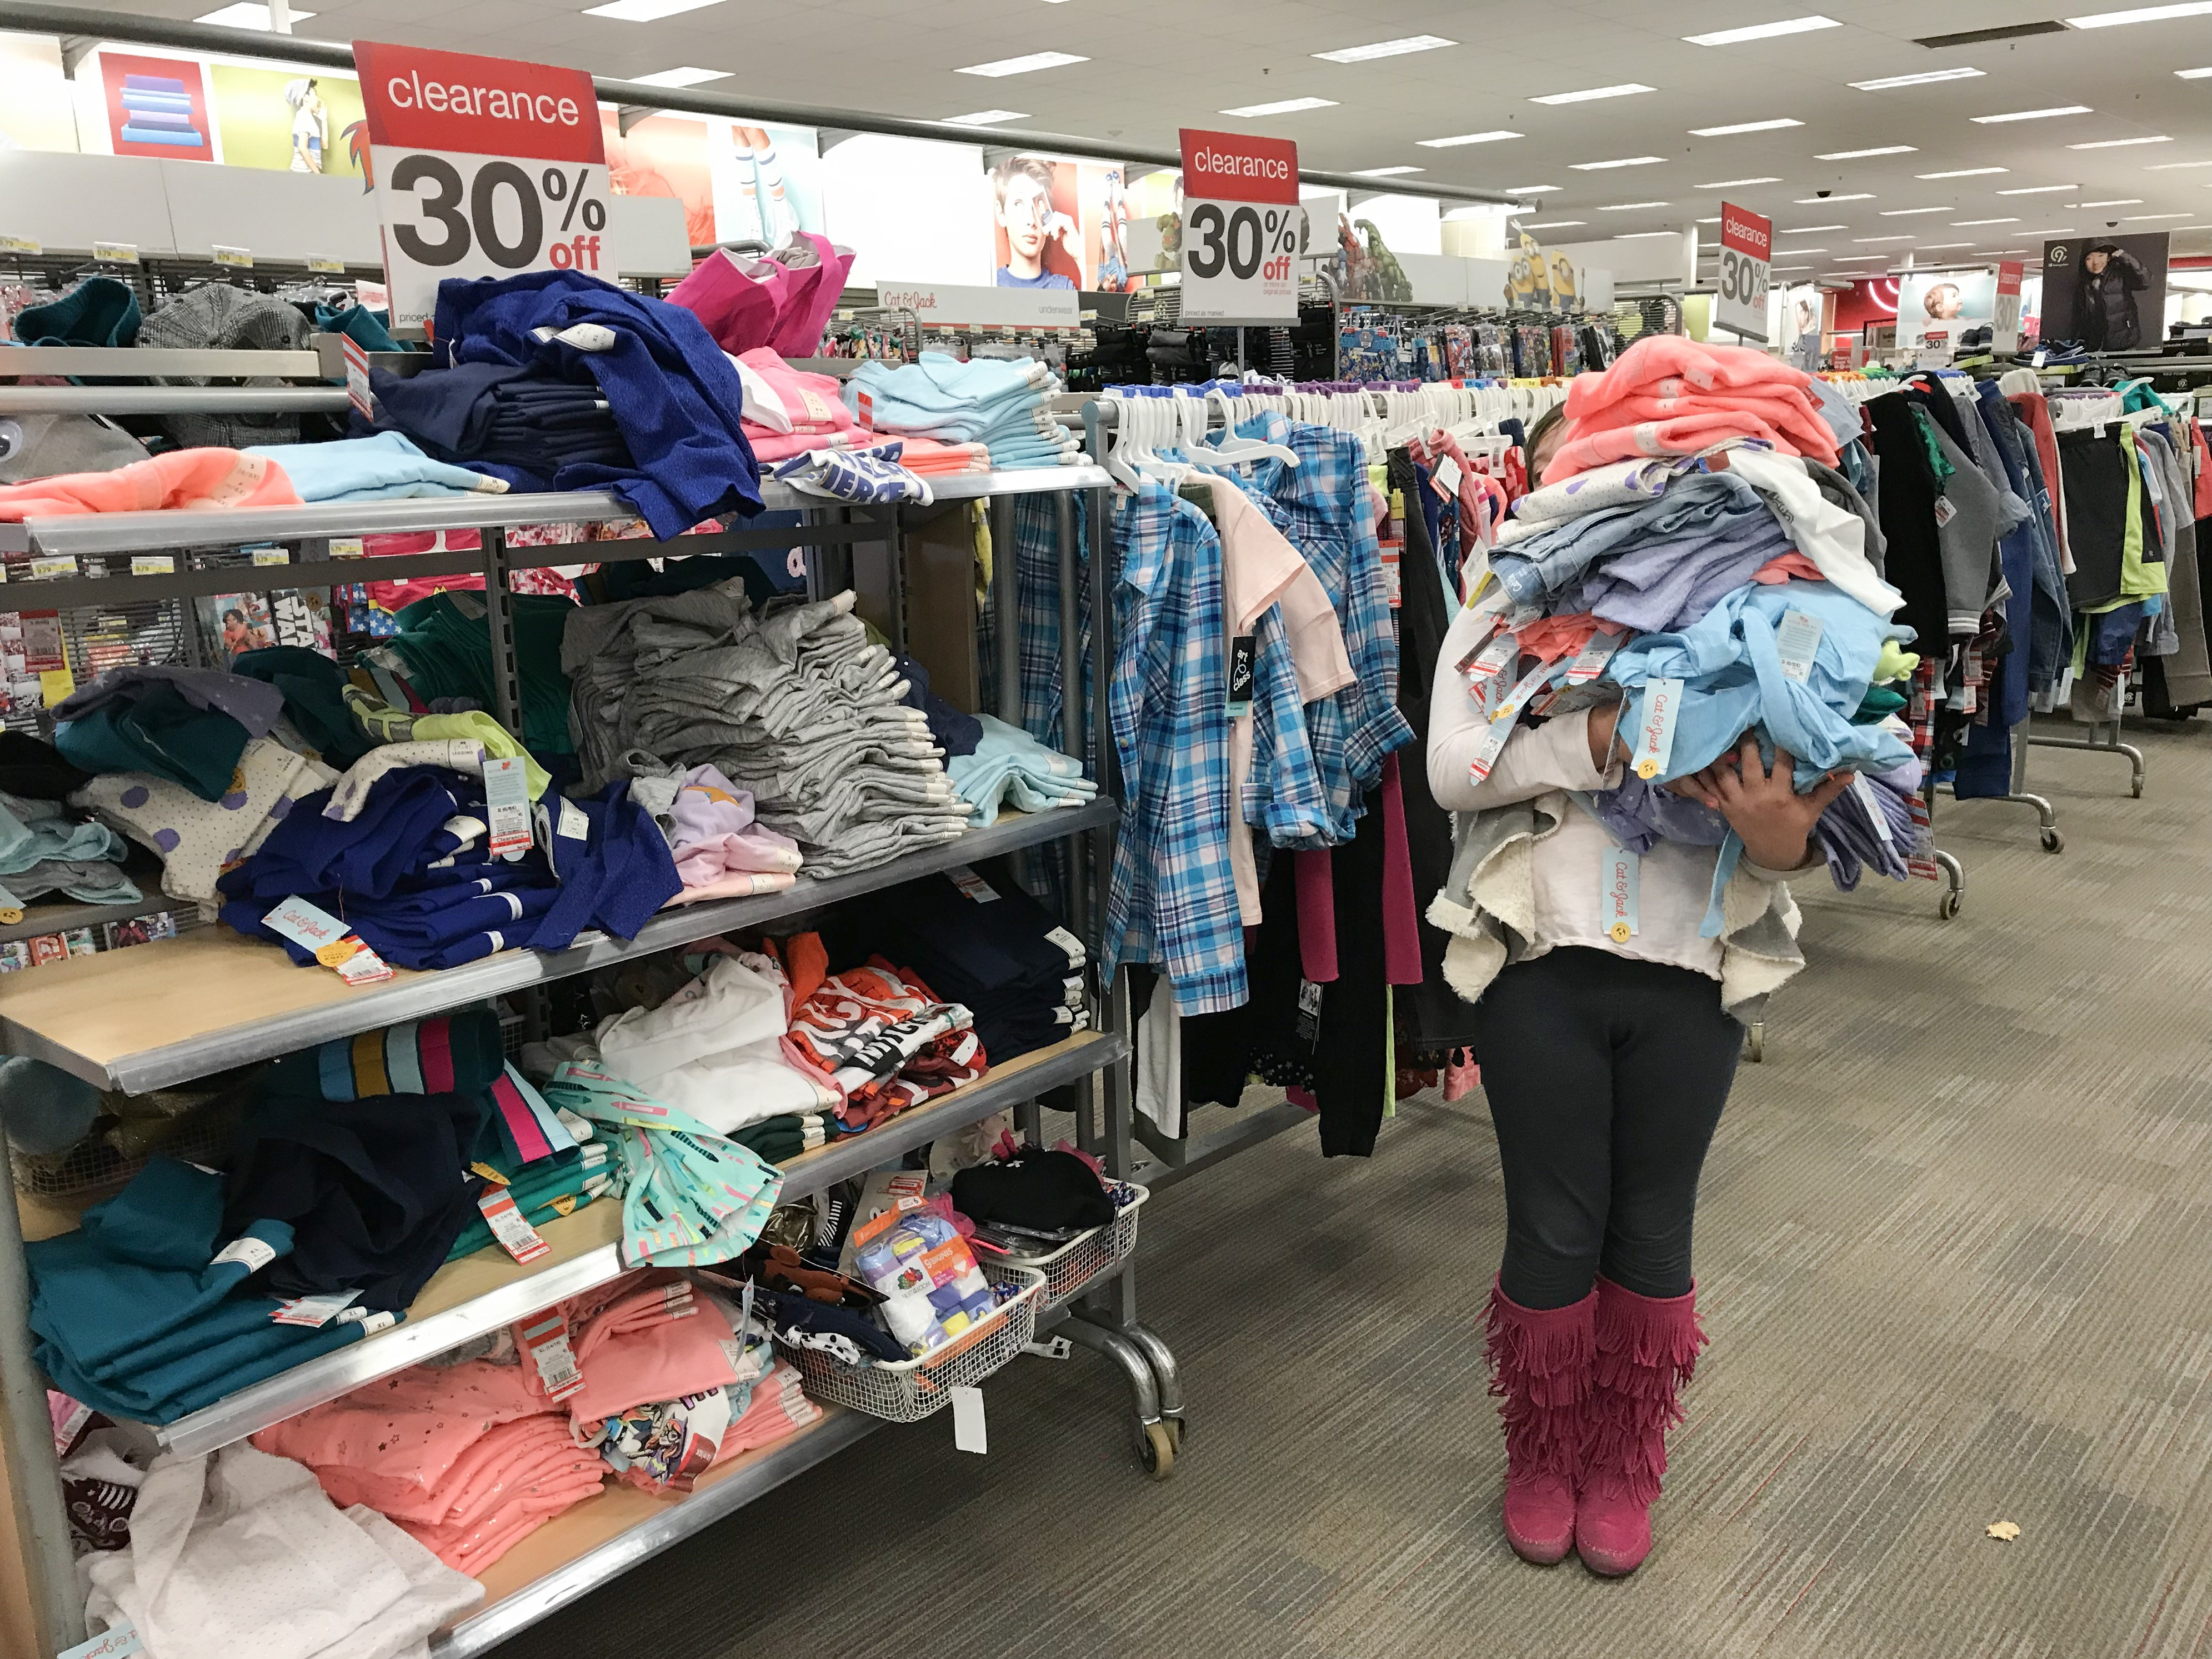 b297b88480b8 10 Ways to Save on Clothes at Target - The Krazy Coupon Lady